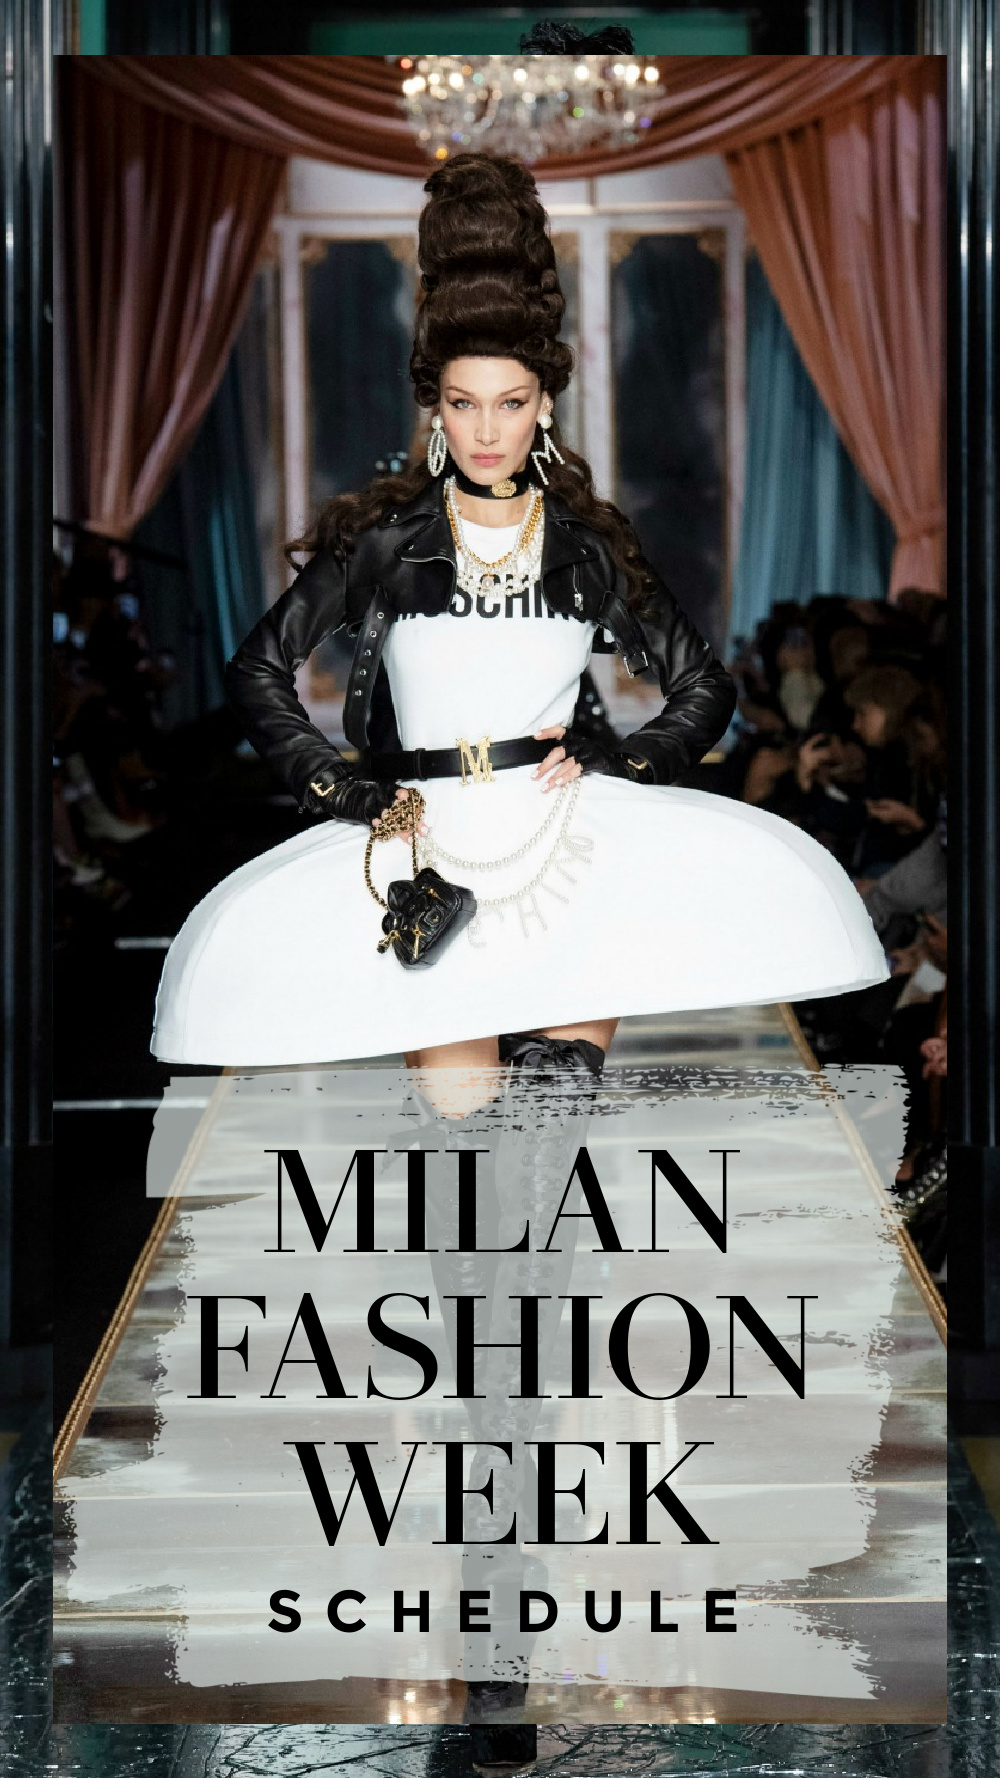 The Official MFW Fall 2021 schedule includes a mix of digital and limited in-person events. I DreaminLace.com #FashionWeek #MilanFashion #LuxuryFashion